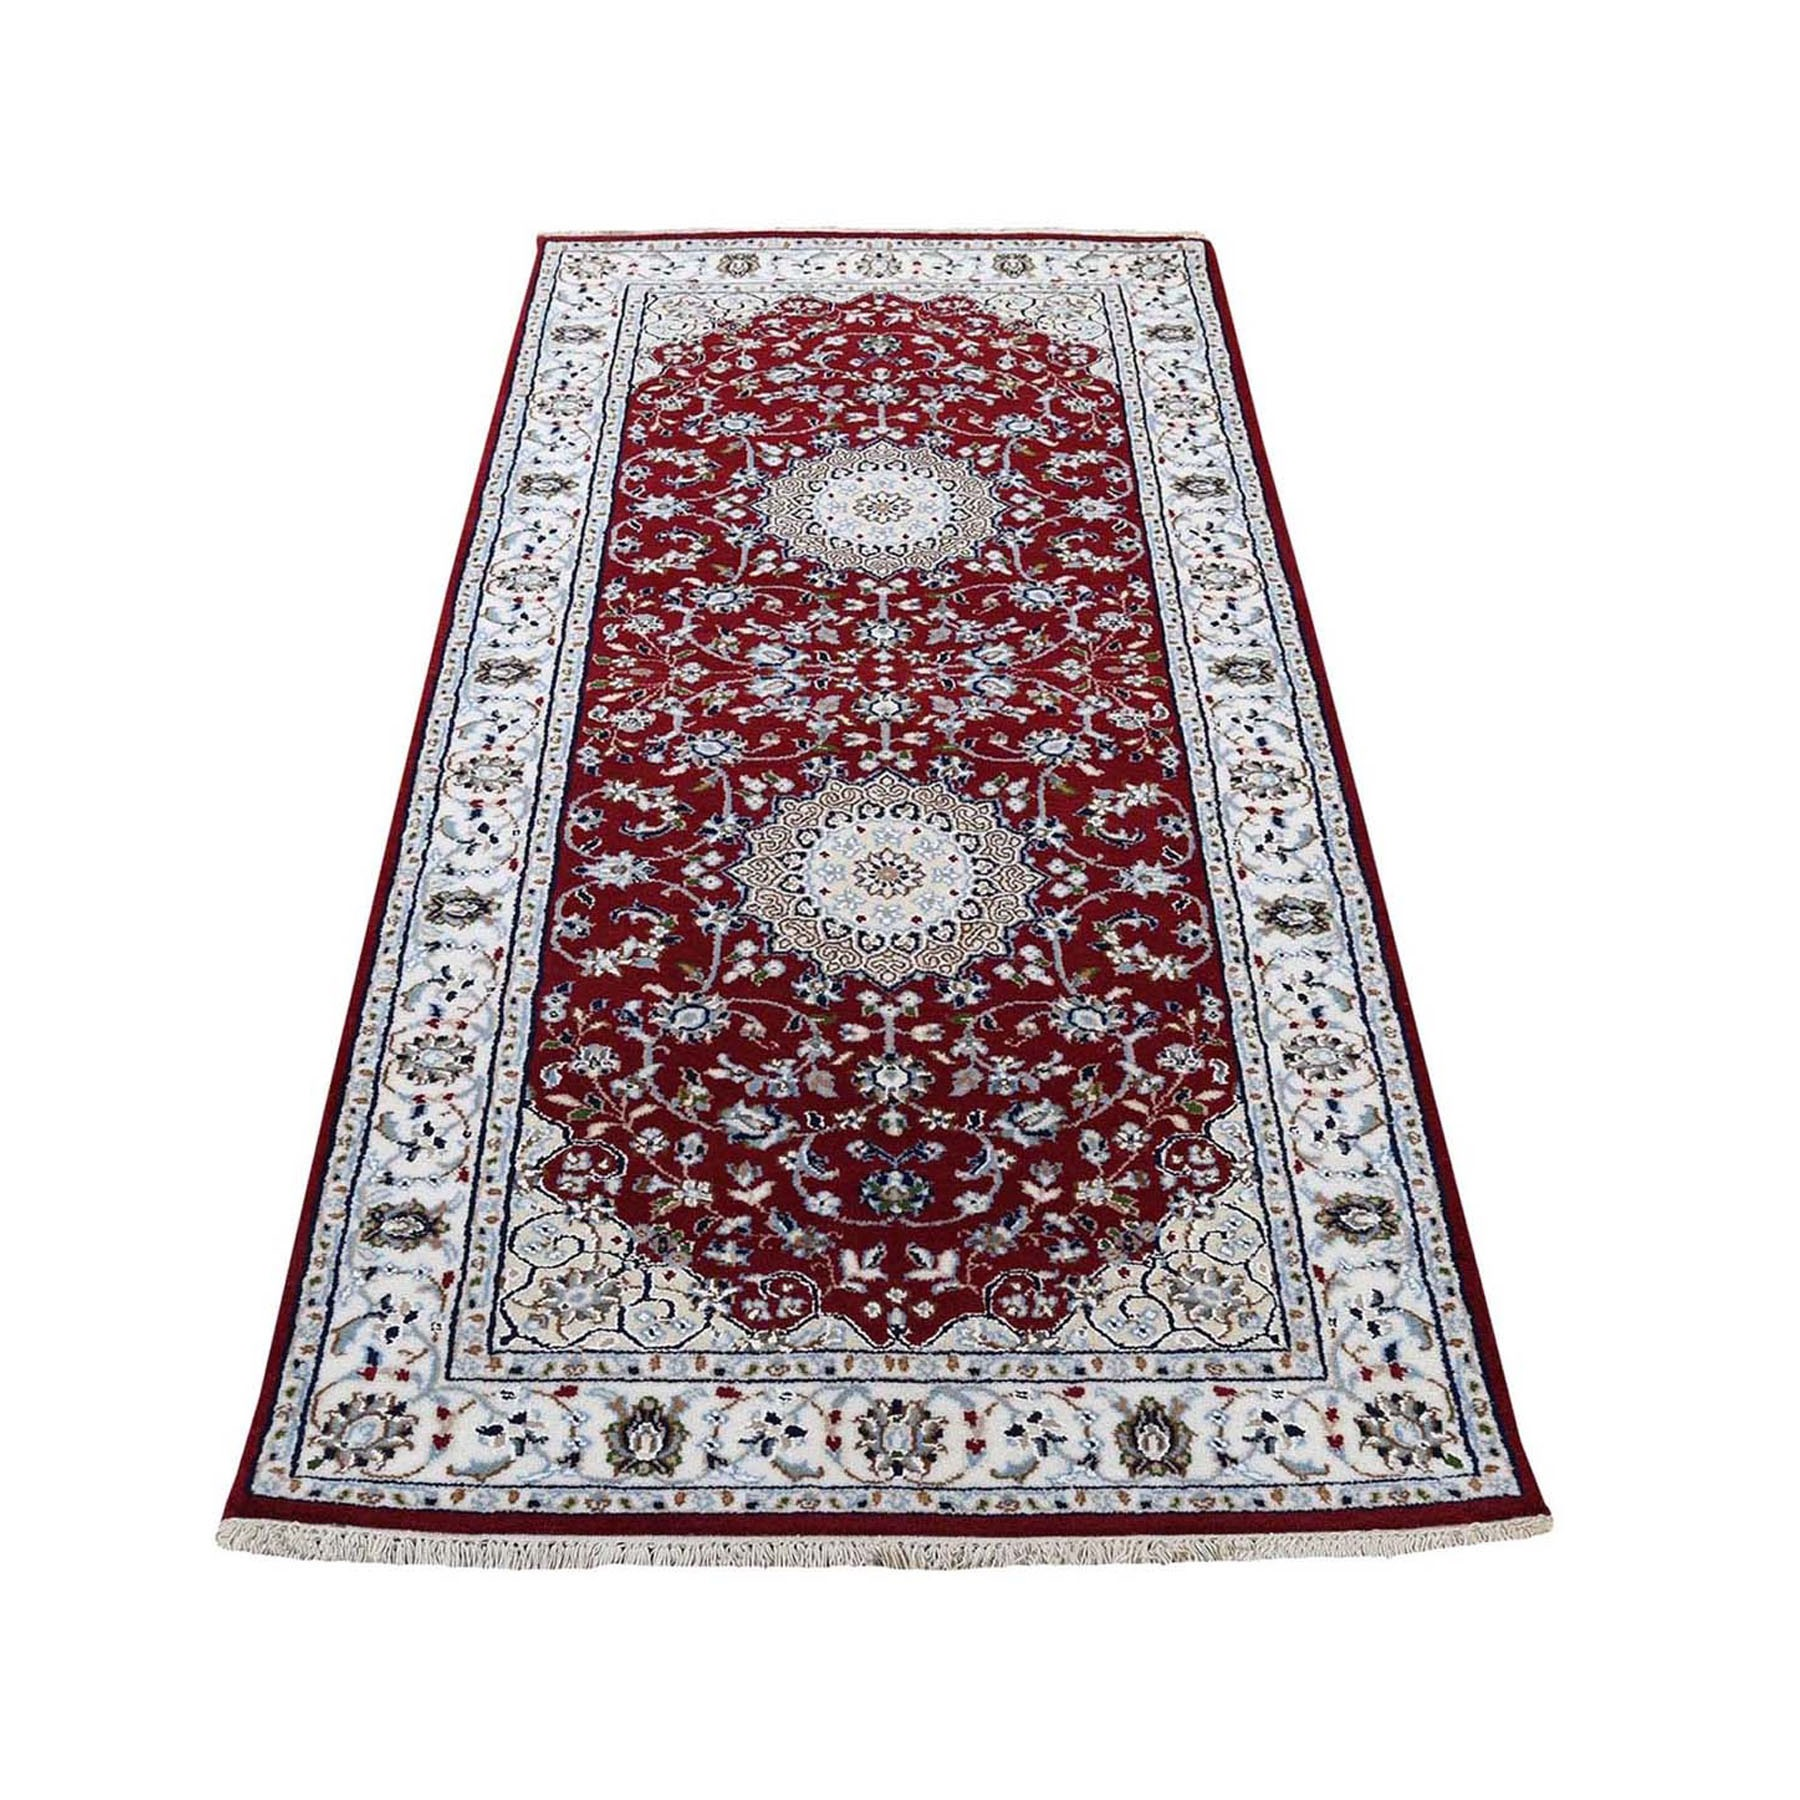 Pirniakan Collection Hand Knotted Red Rug No: 0199960